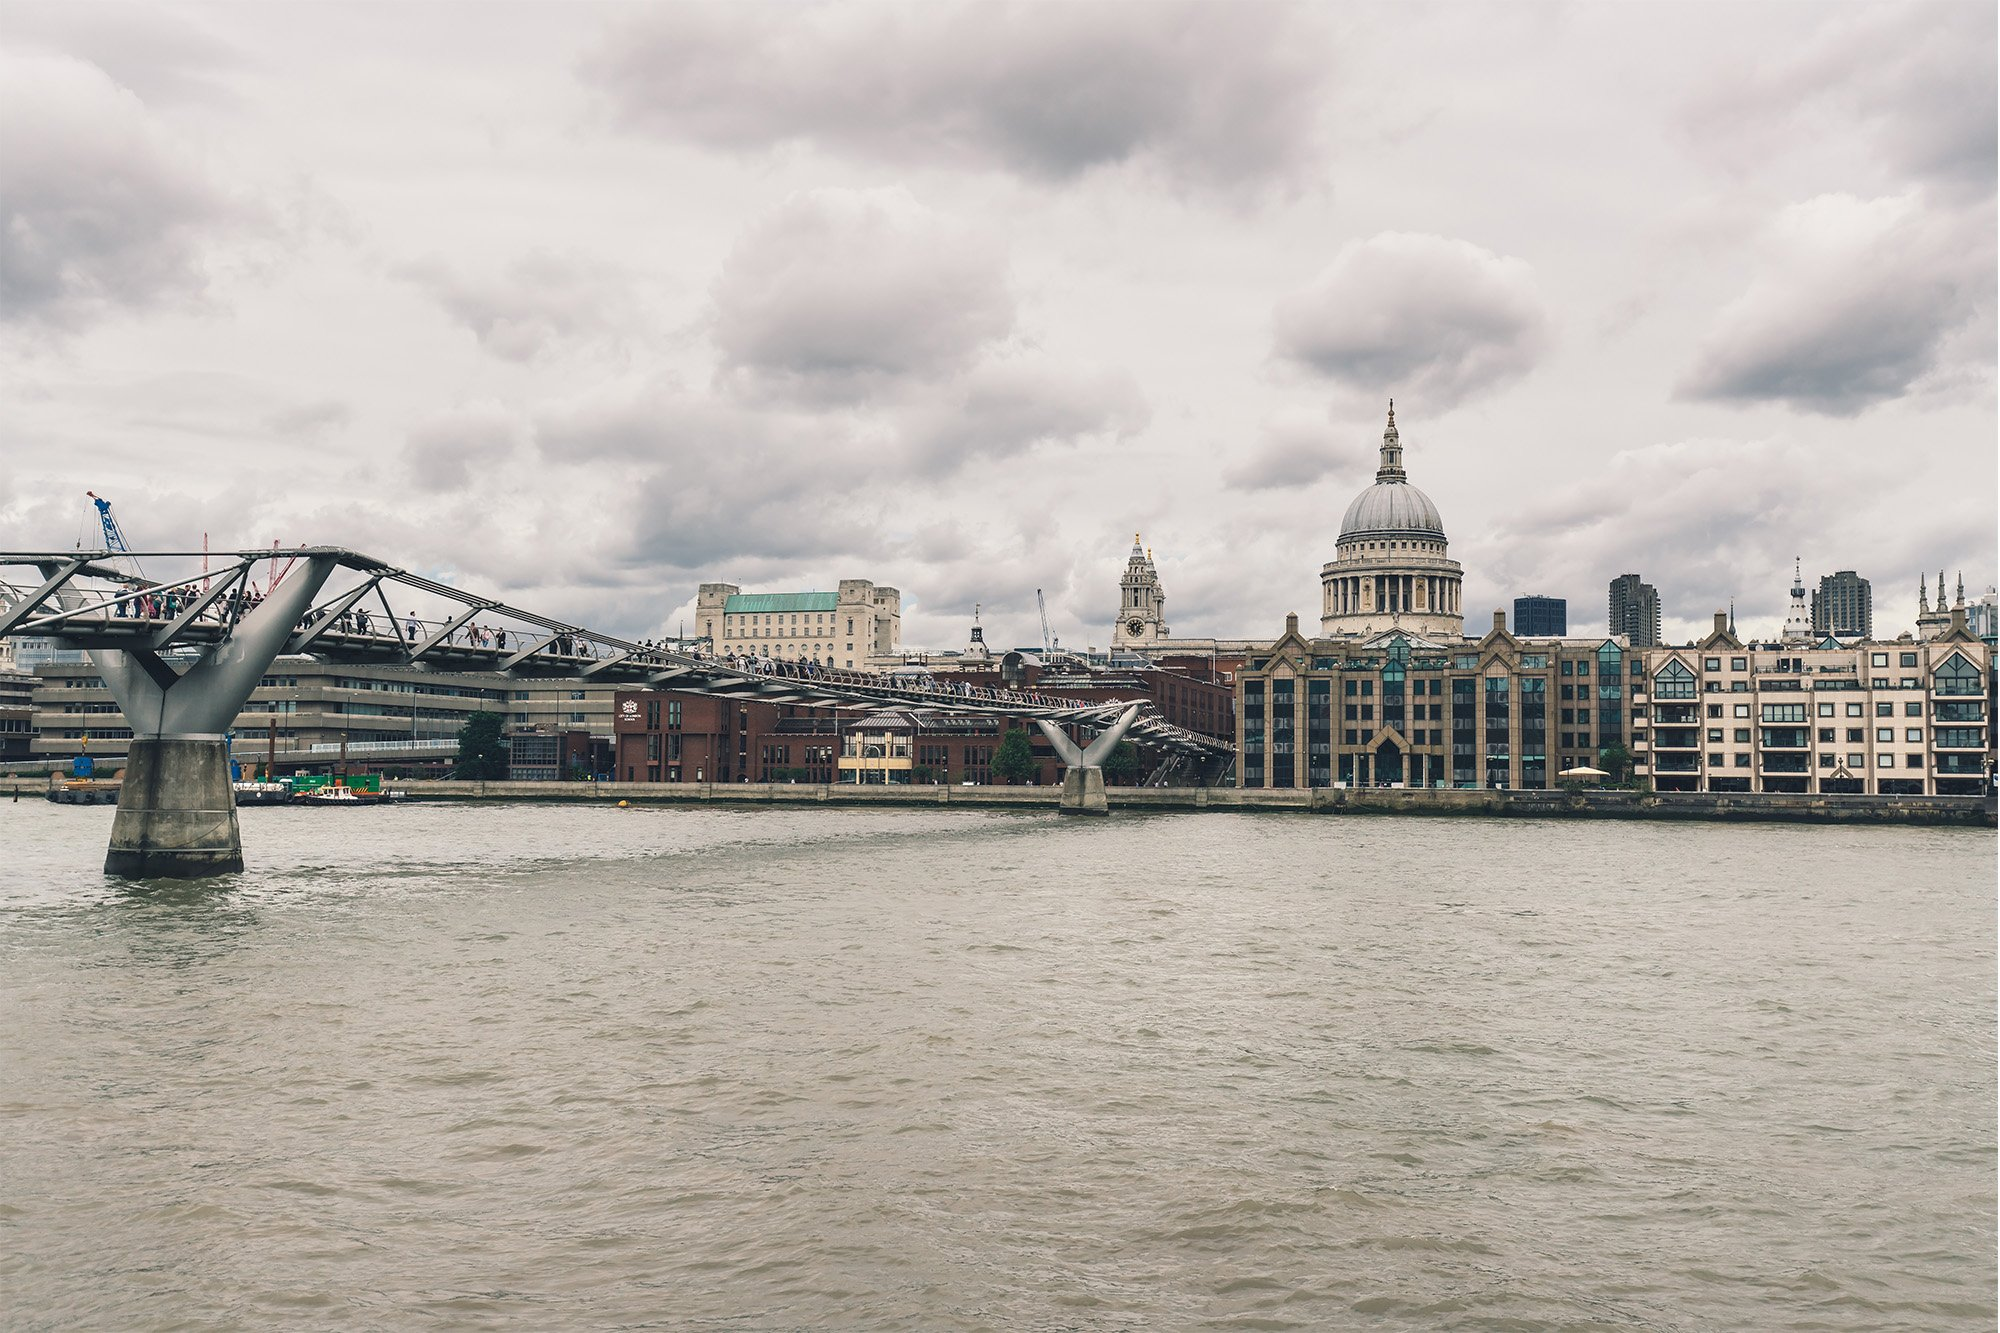 Testing the Sony A7R II – A riverside view of The Millennium Bridge and St. Paul's Cathedral